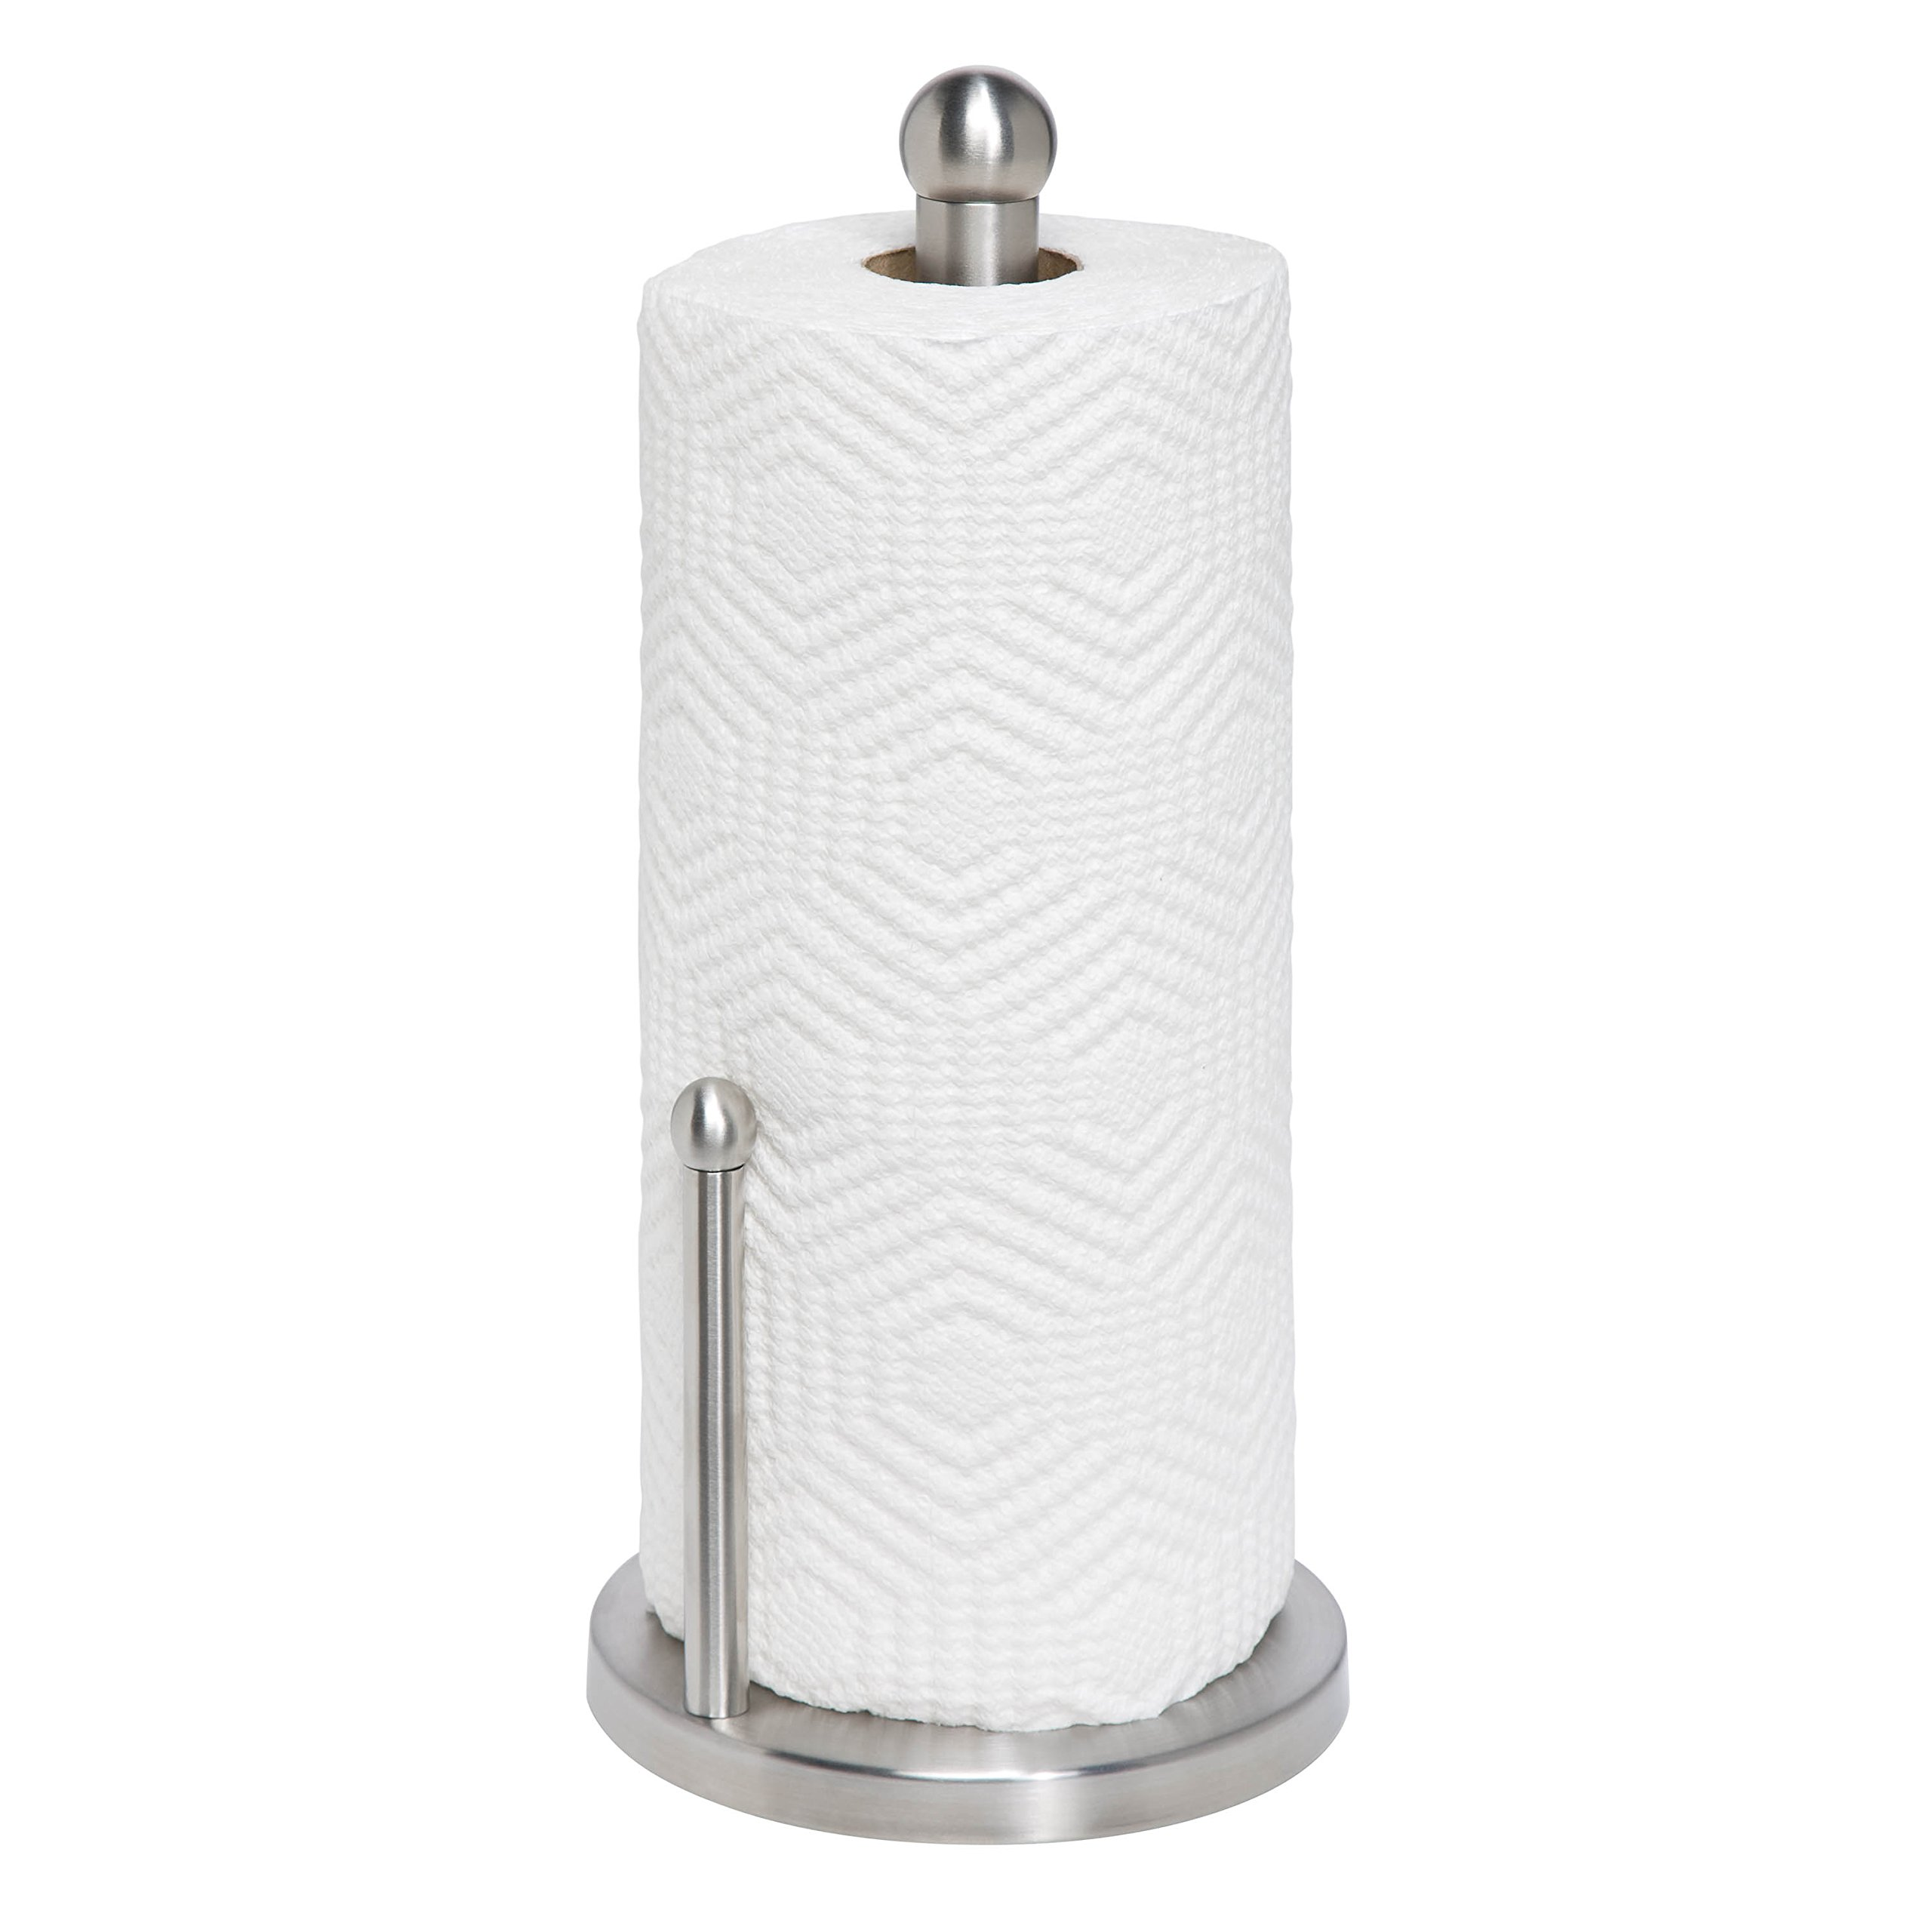 Honey-Can-Do KCH-01077 Stainless Steel Paper Towel Holder